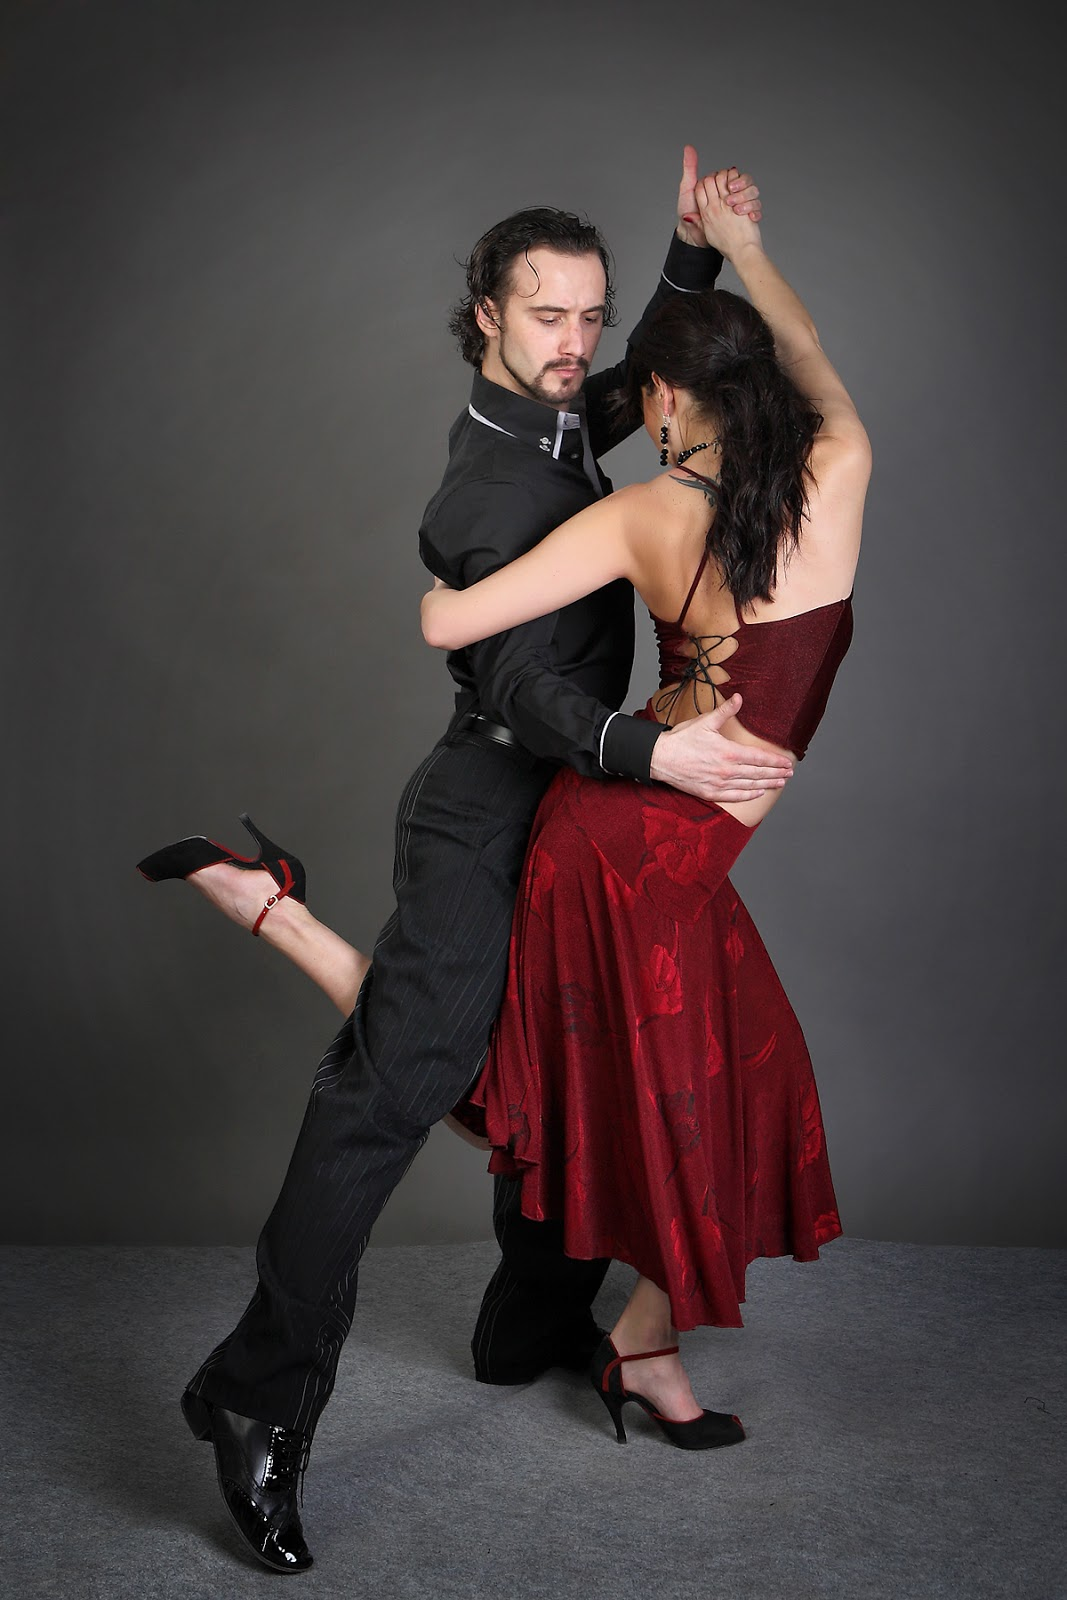 Tanguerin News The Day Of Tango Celebrated With A Big Tango Ball In